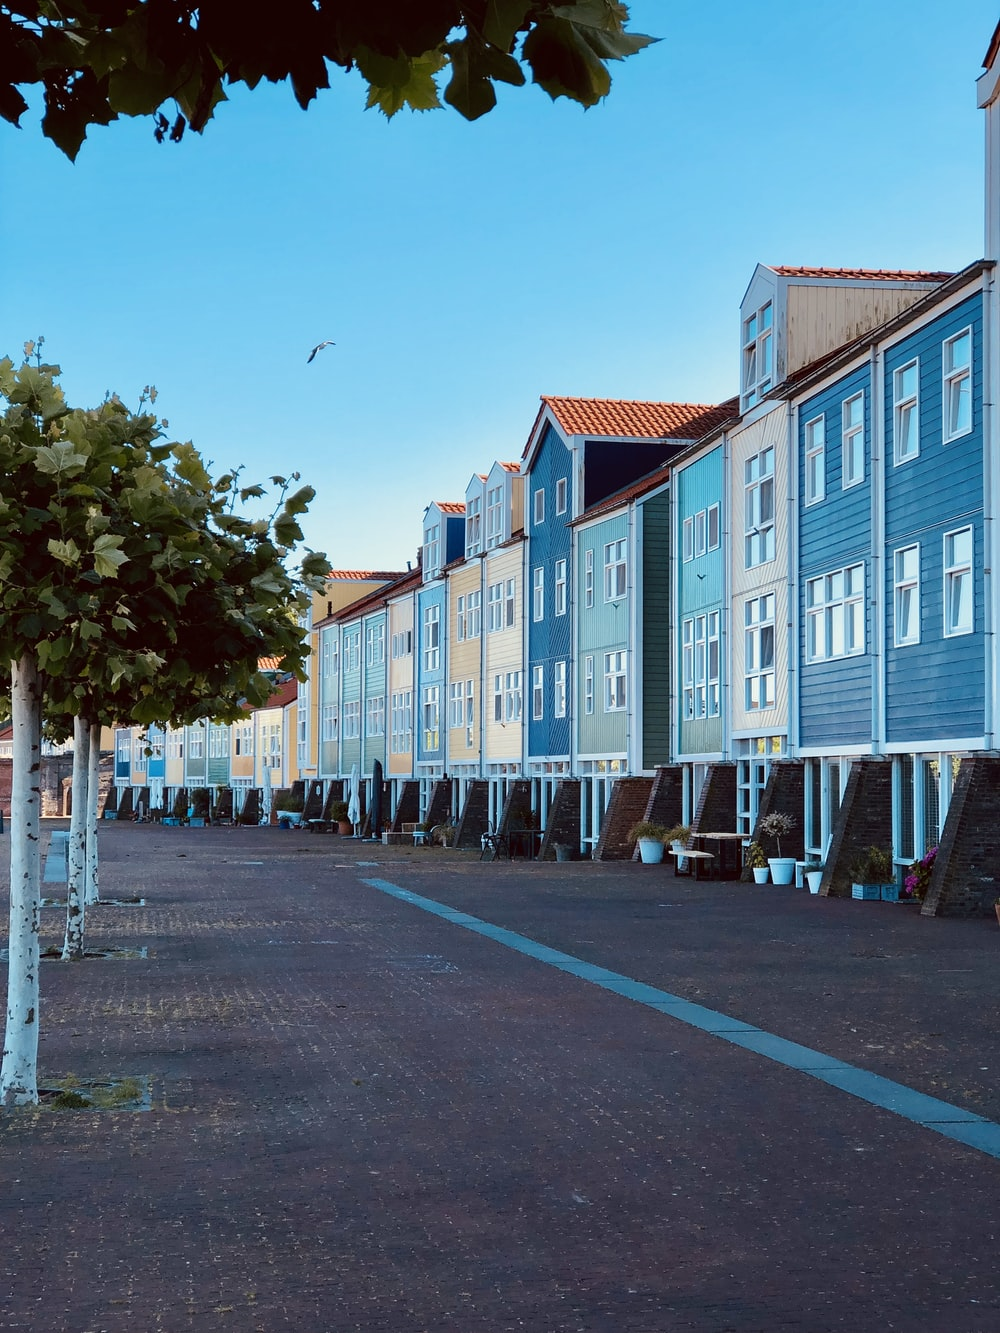 blue wooden houses